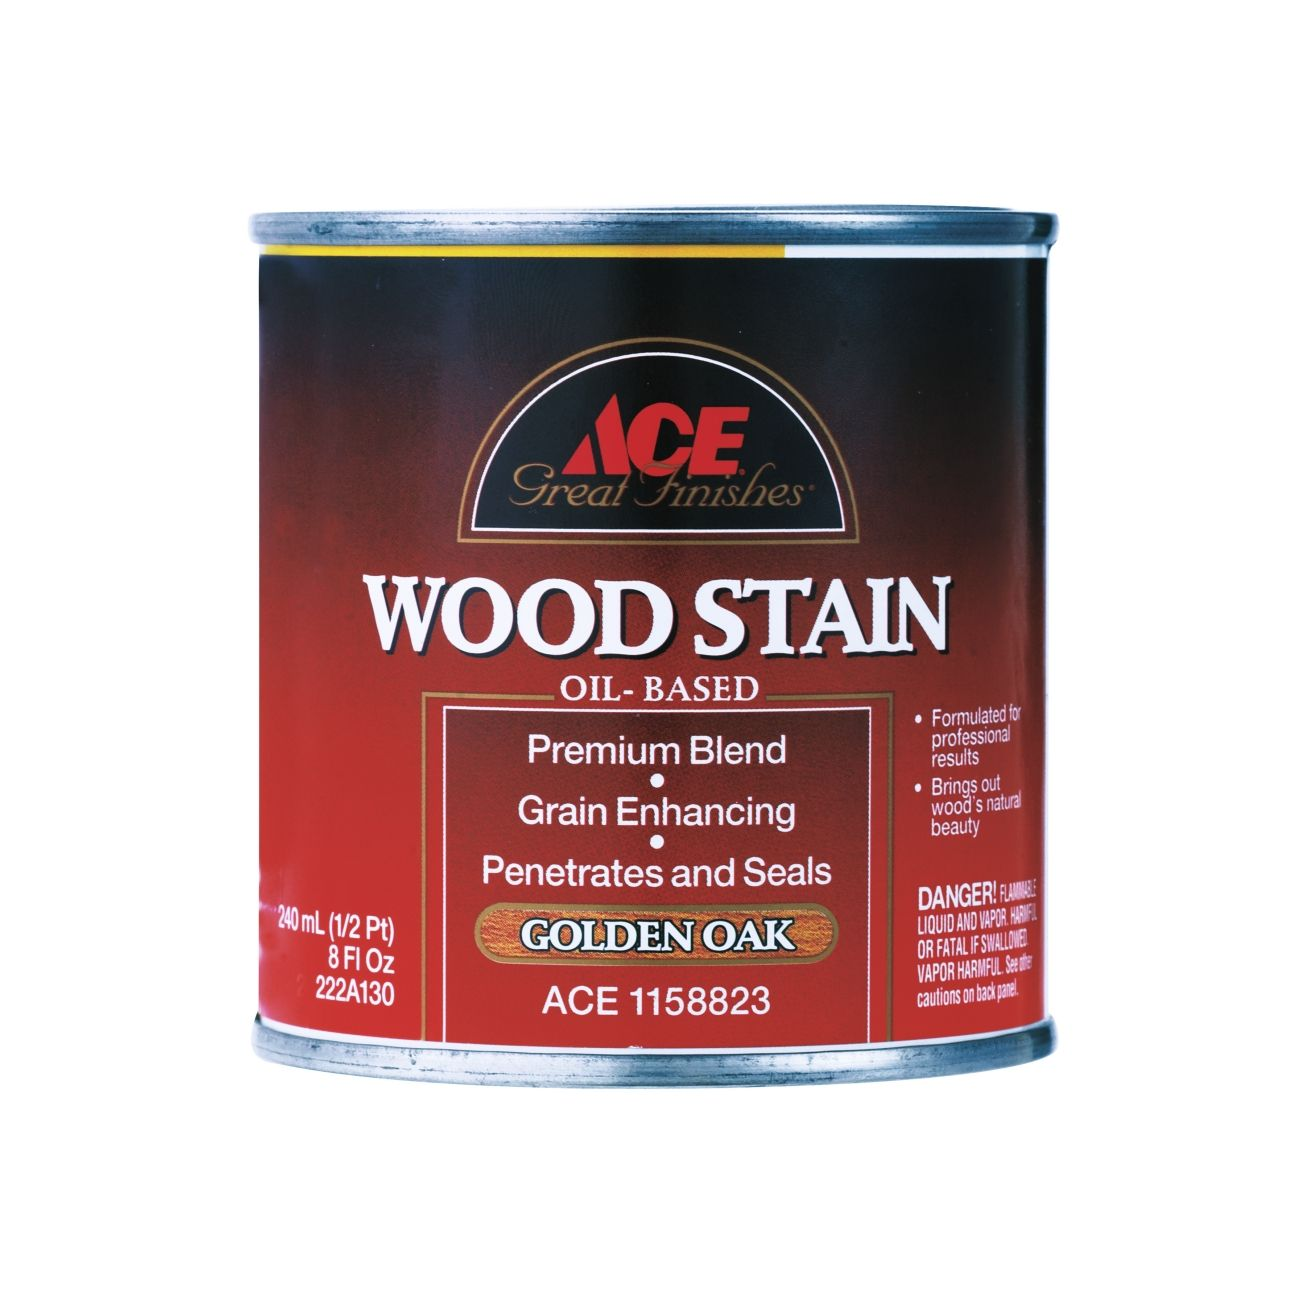 Ace Great Finishes Wood Stain In Golden Oak 1 X2f 2 Pint Wood